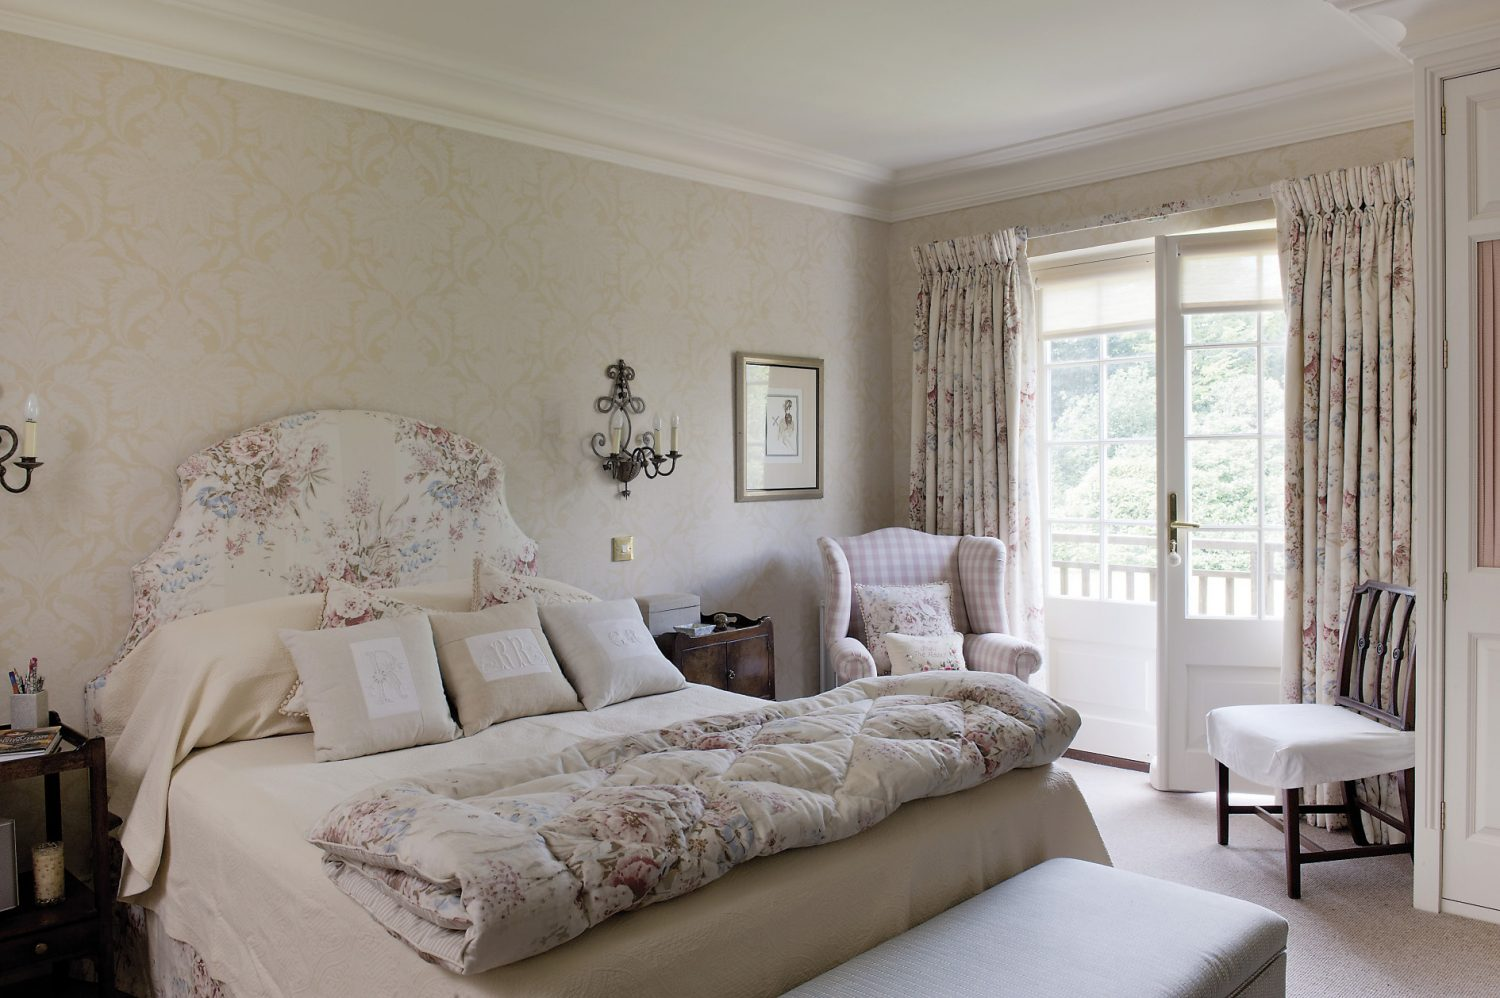 Ro's bedroom overlooks the garden and has French windows onto a small wooden balcony. The room is light and serene, with a pale wallpaper and a bedhead and curtains made of the same softly coloured chintz